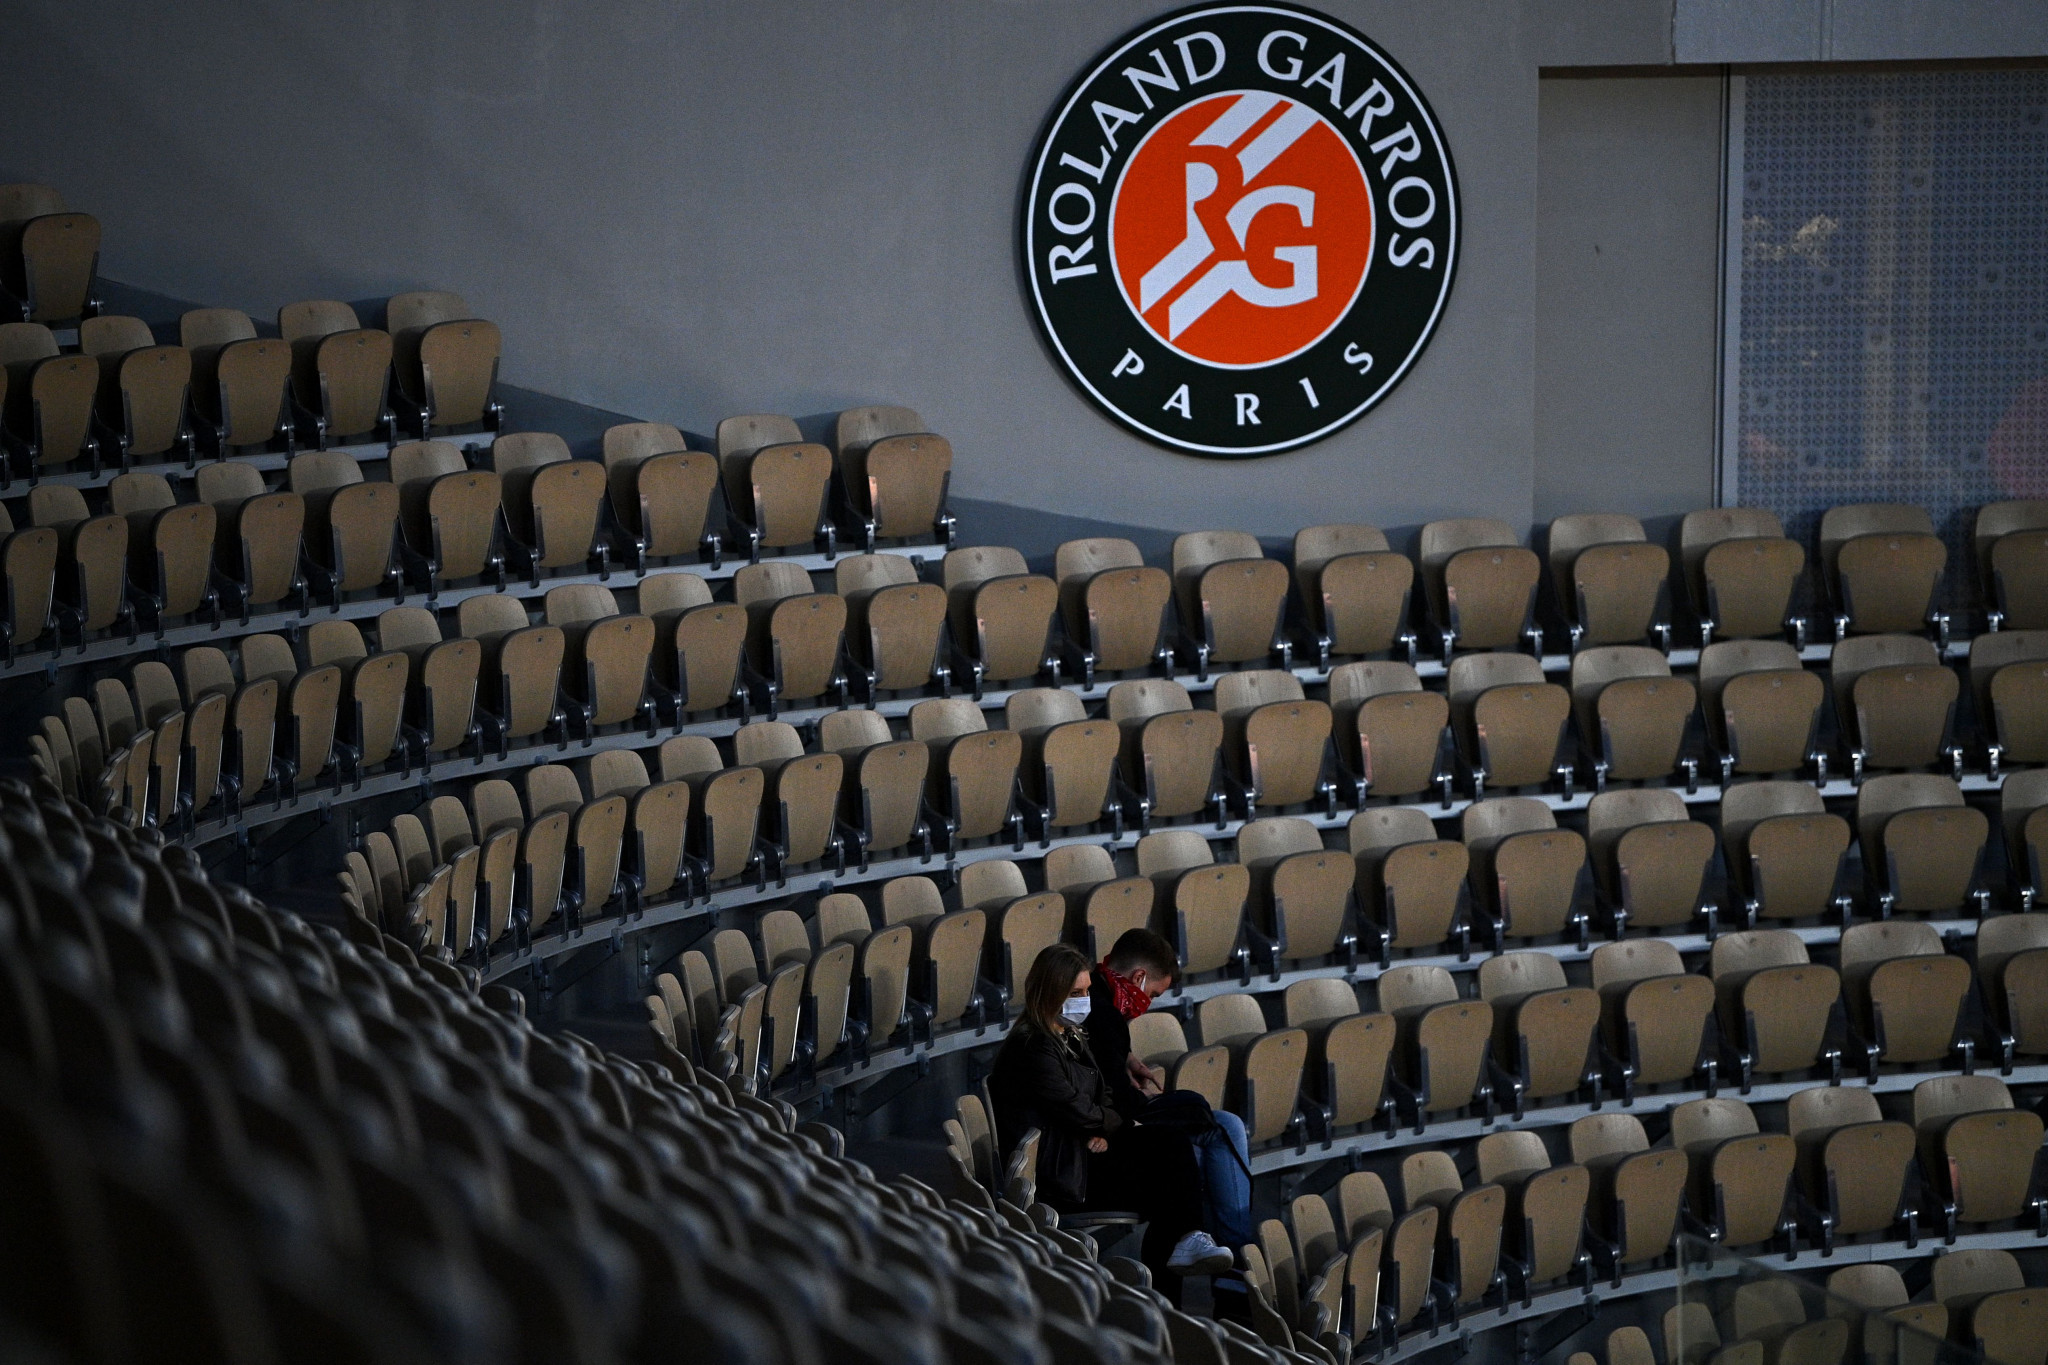 Limited fans were allowed at the 2020 French Open, after it was pushed back to September and October ©Getty Images